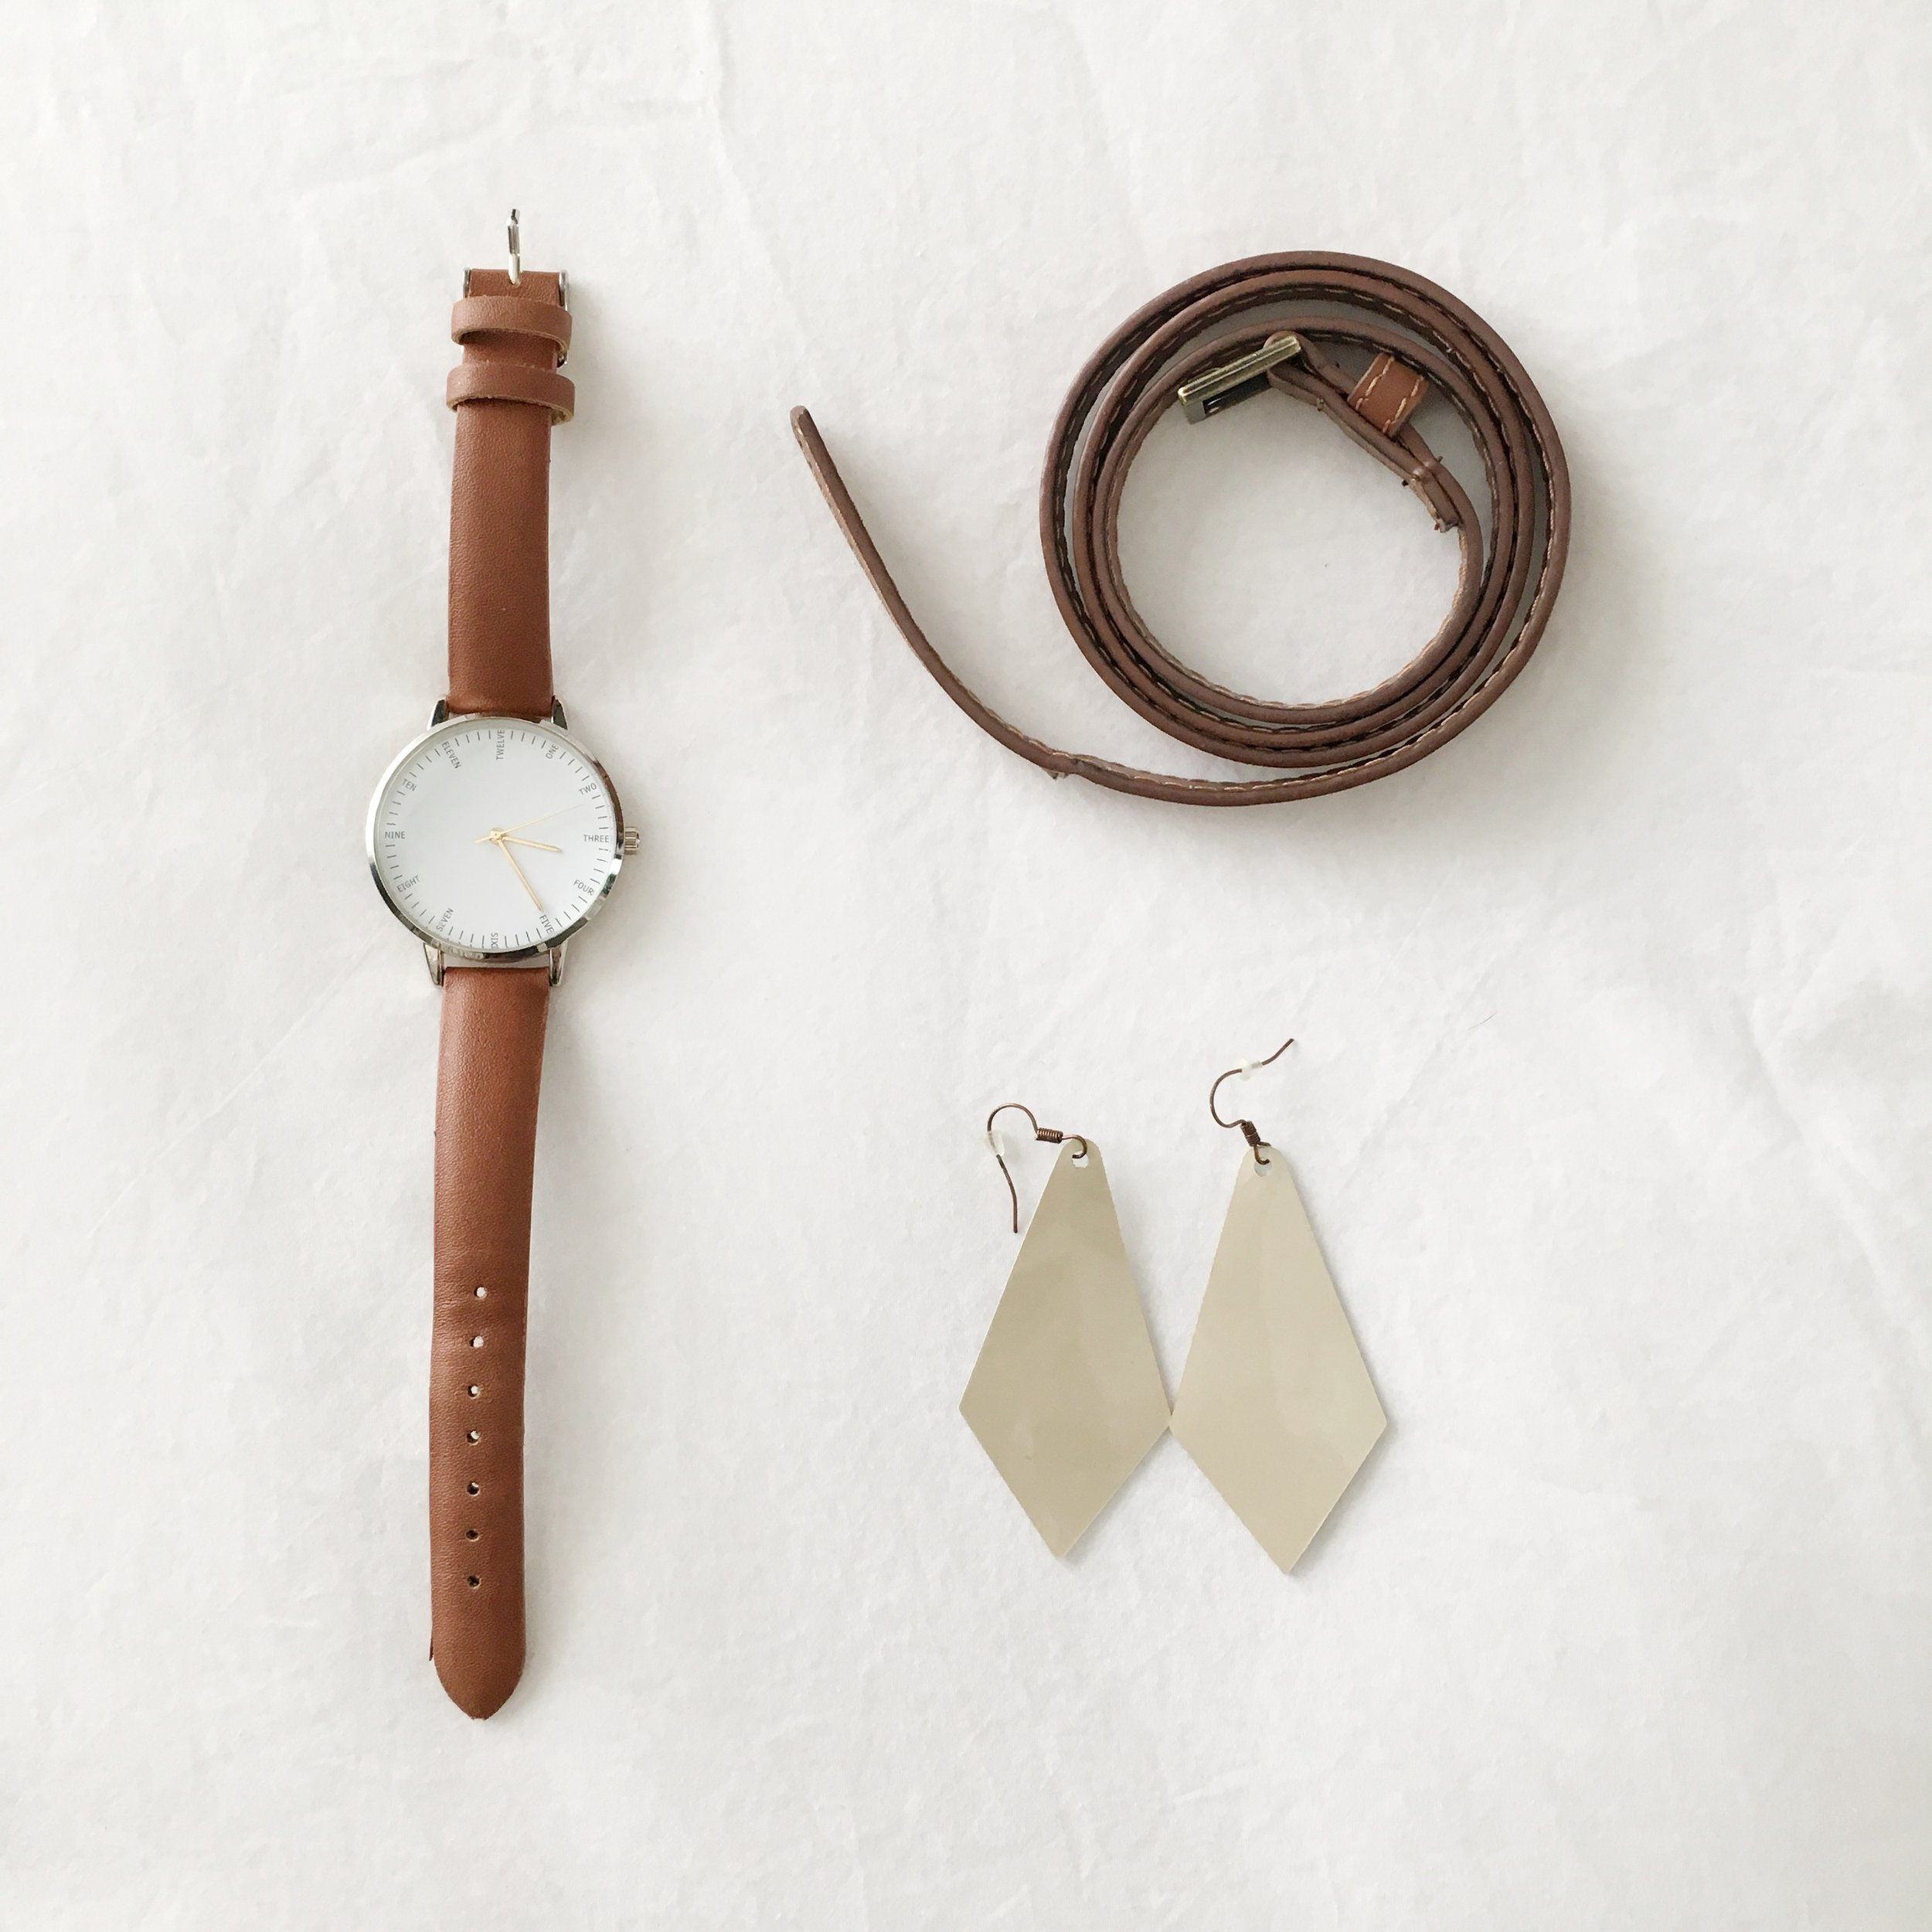 Simplify with few accessories